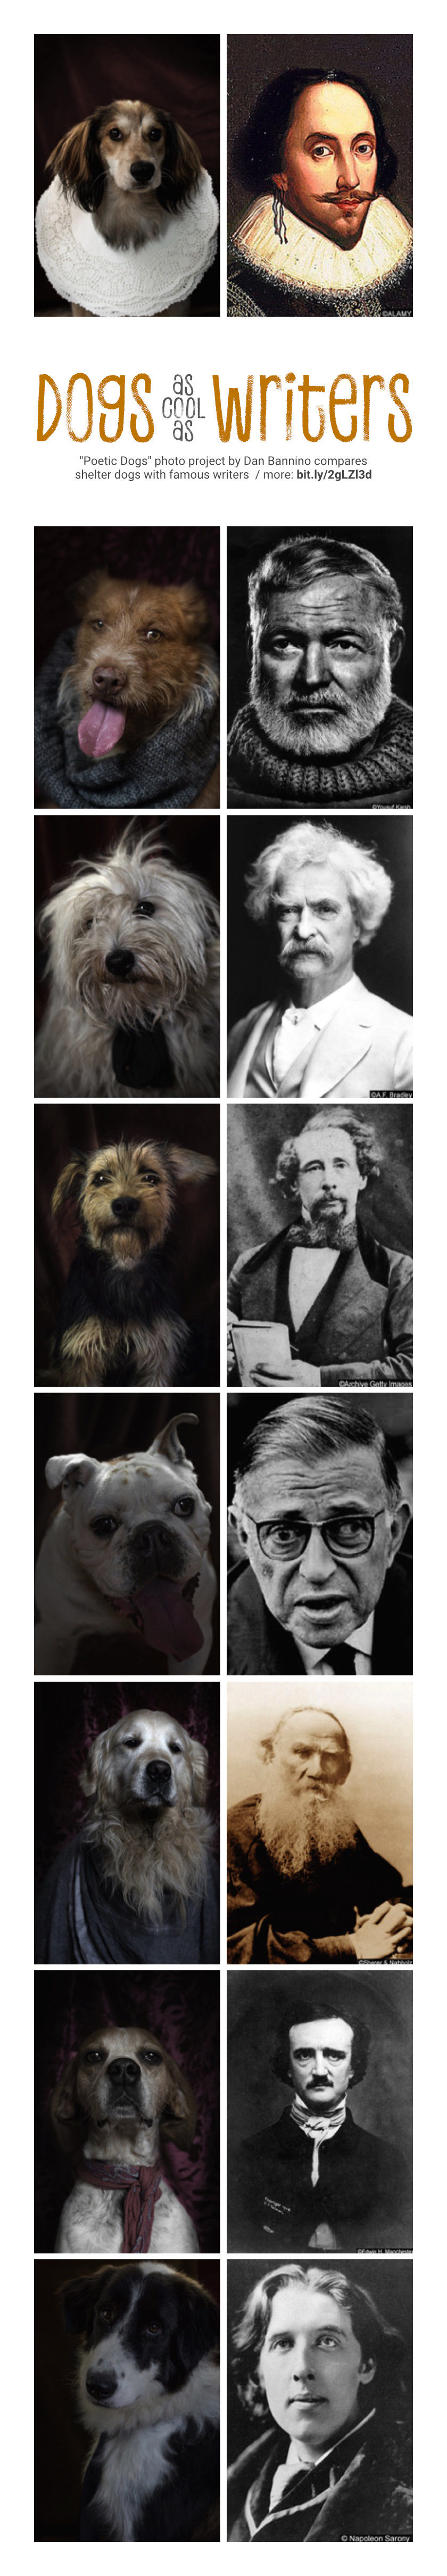 Shelter dogs as cool as famous writers - photo project by Dan Bannino